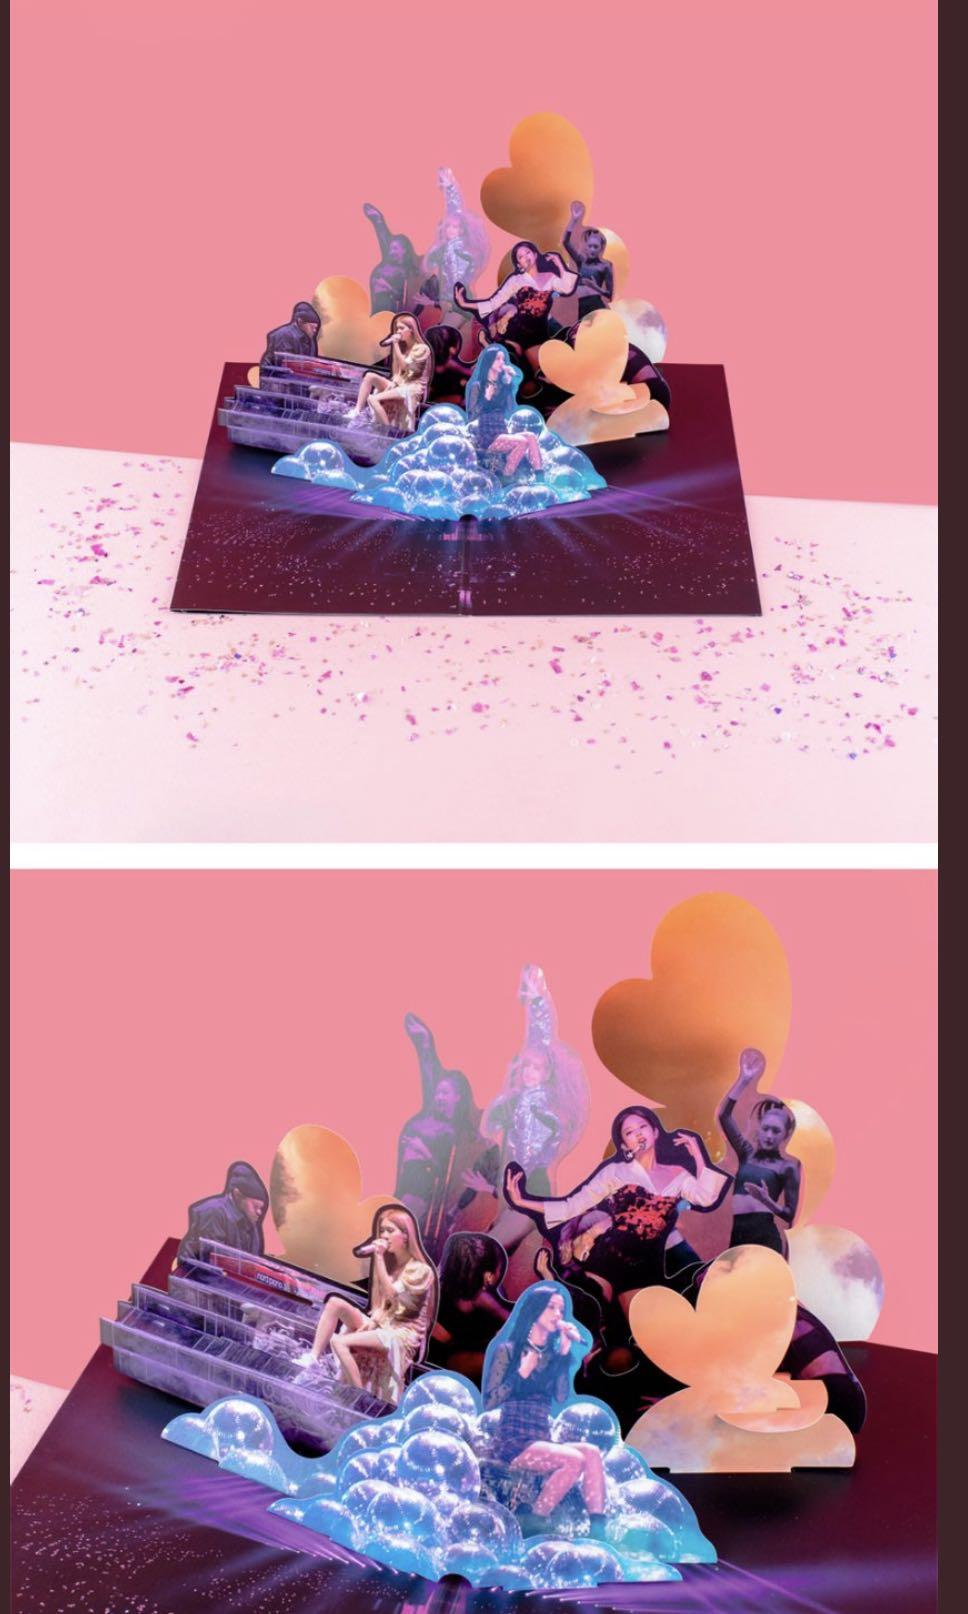 [GROUP ORDER] Blackpink In Your Area Pop-Up Card [Blackpink Merchandise]